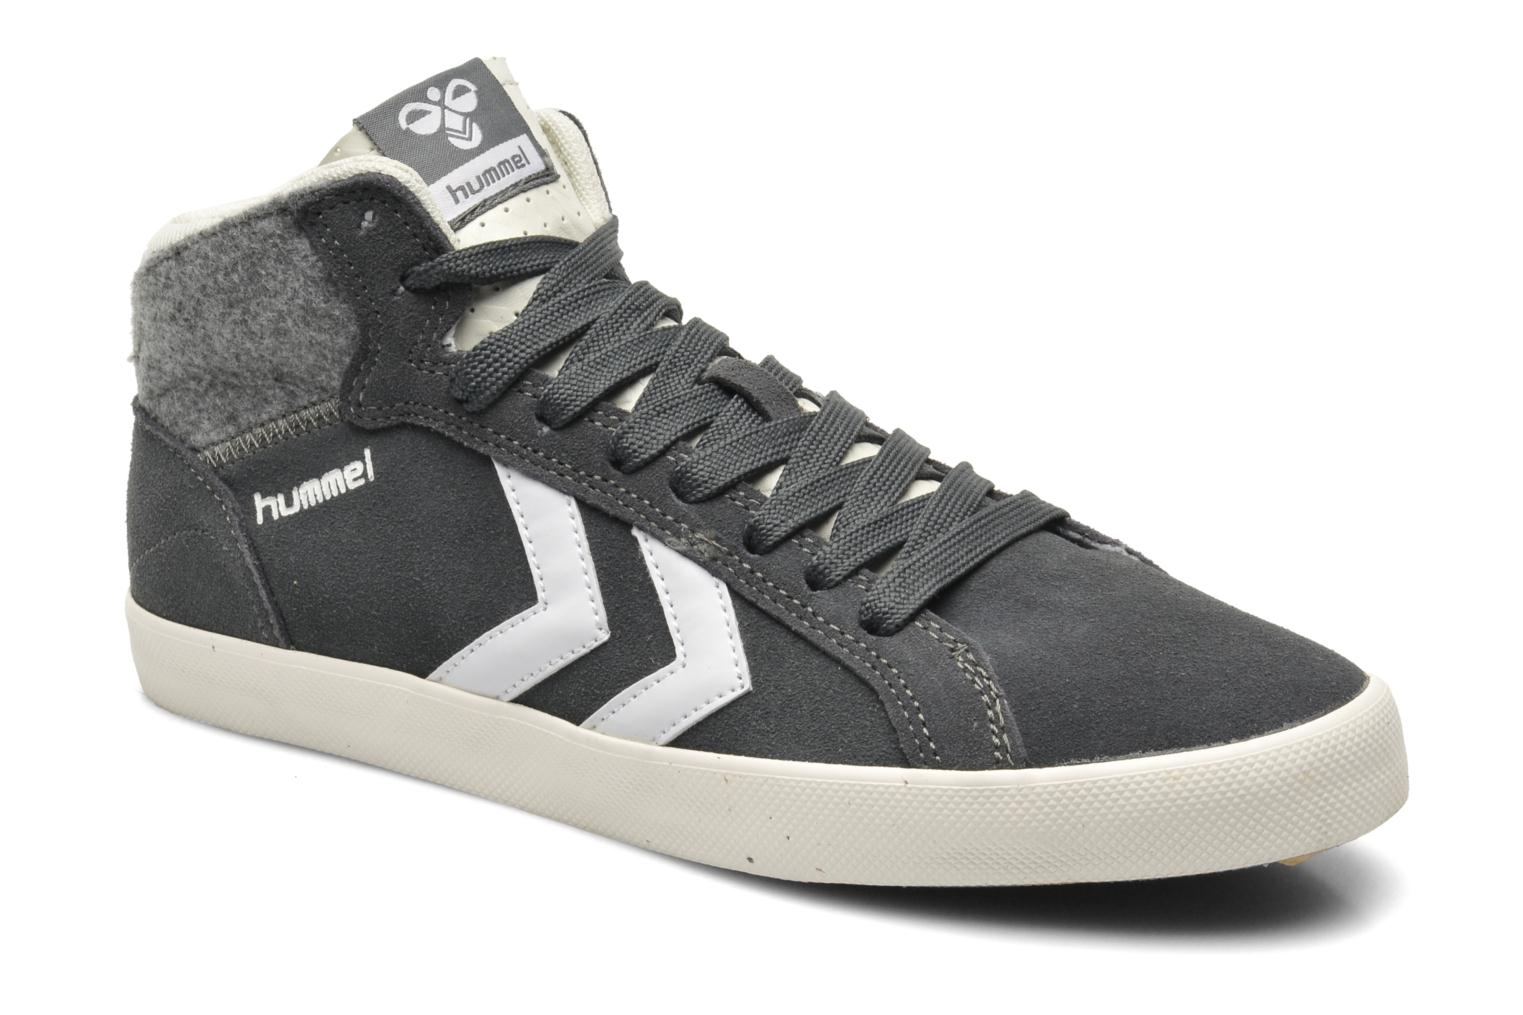 Sneakers Game Mid by Hummel